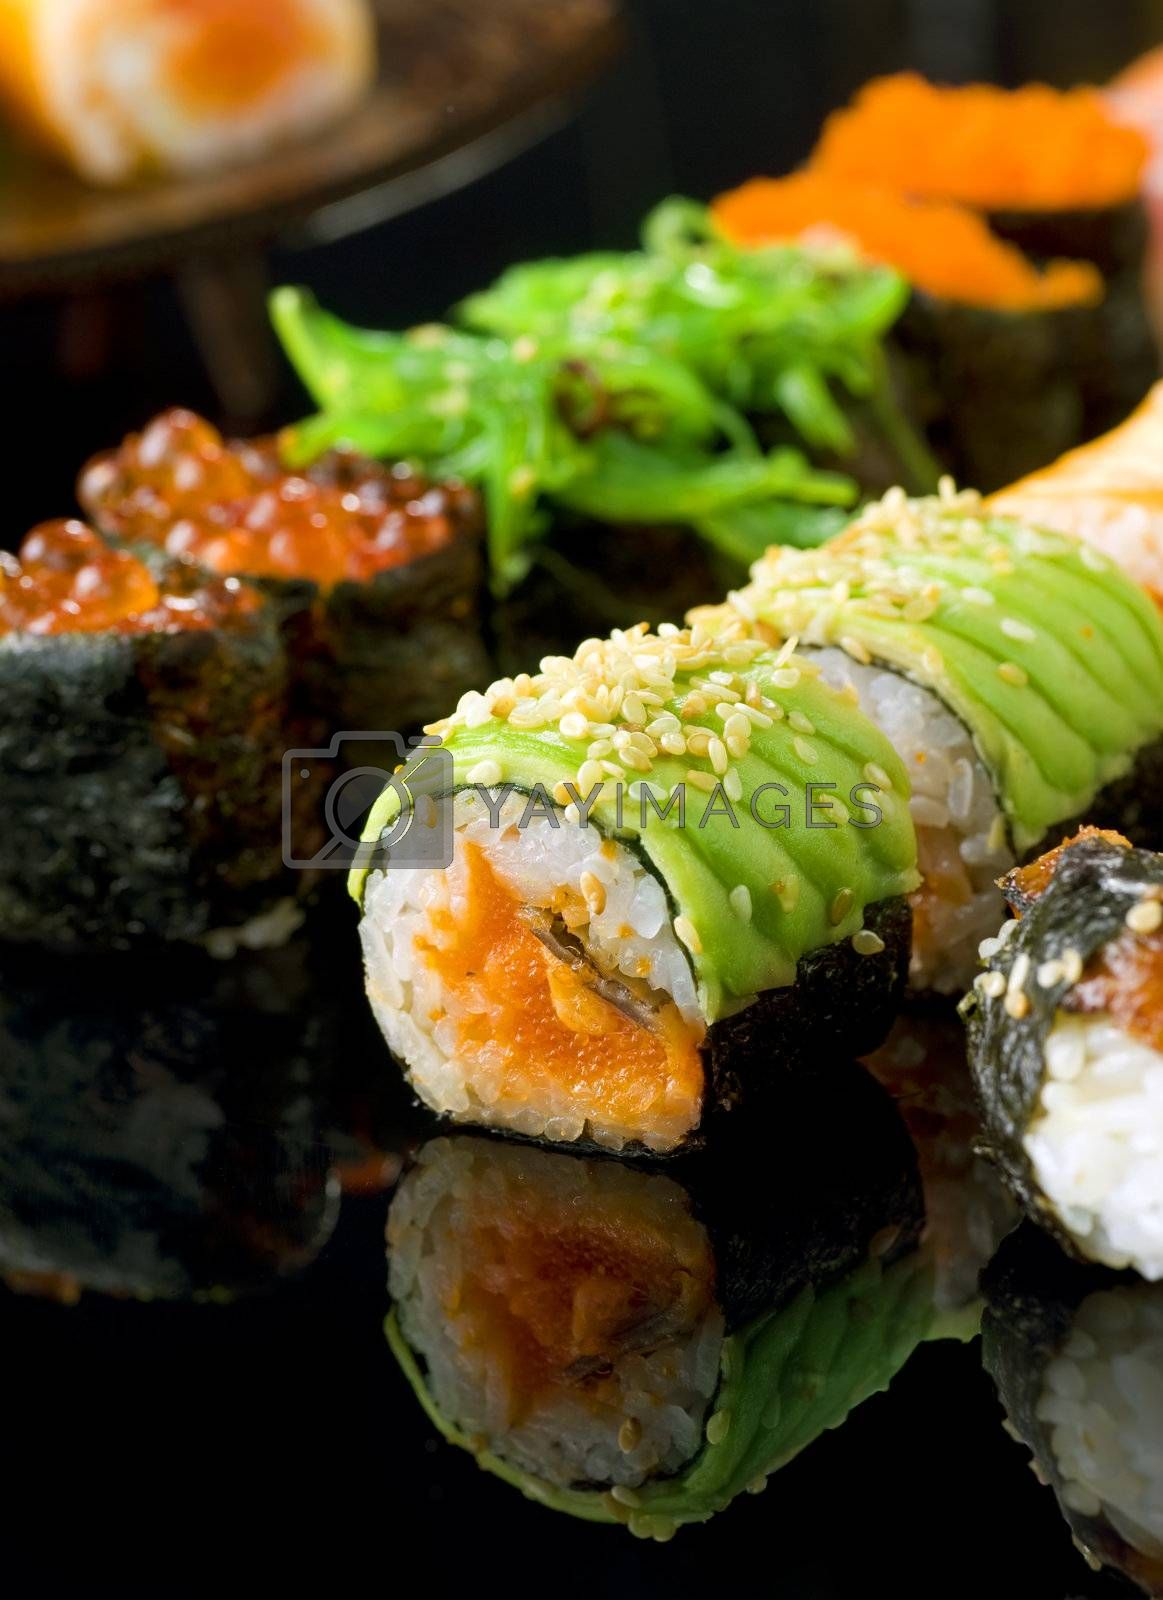 Sushi and Rolls closeup by Subbotina Anna